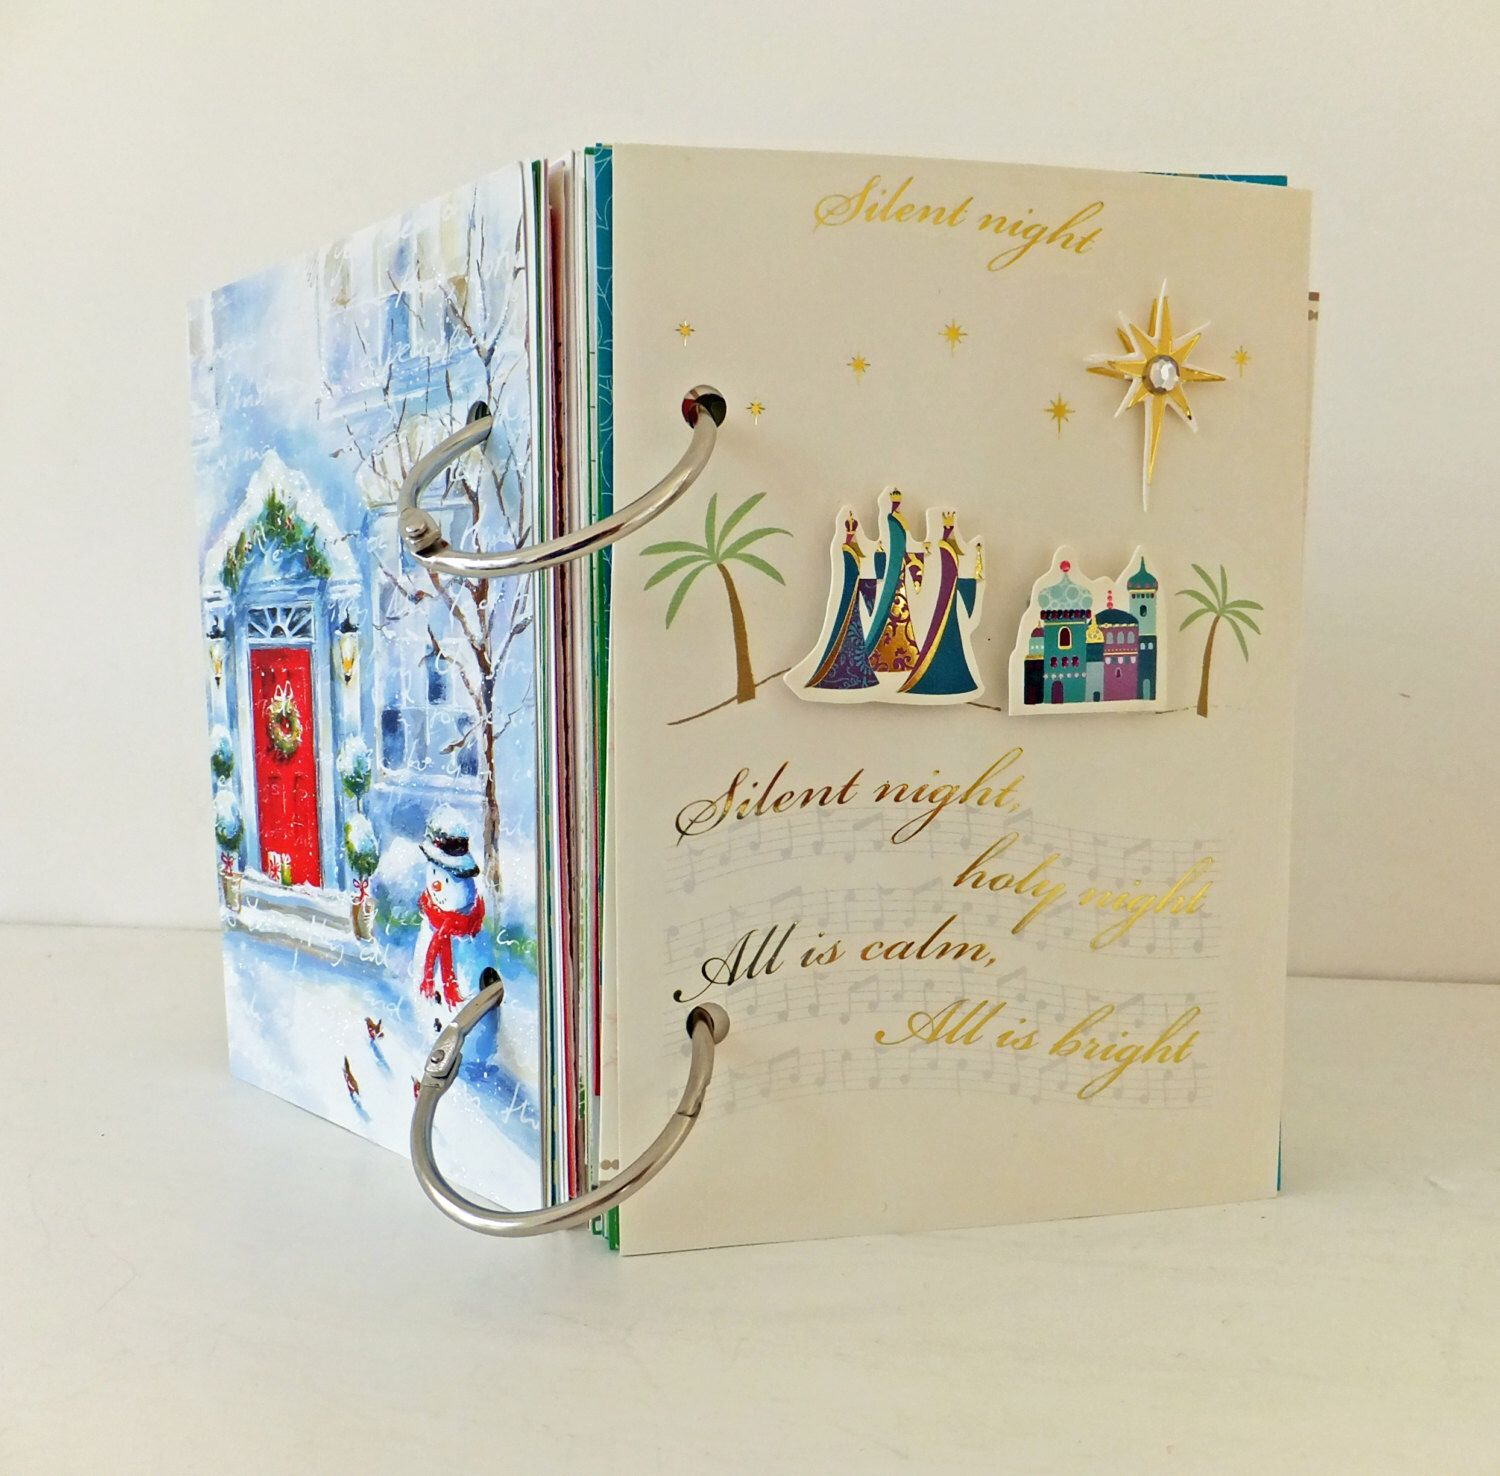 Christmas Smash Book, Mixed Paper Journal. Eco-friendly Christmas Journal. Rescued Paper Notebook. Recycled. Upcycled Art Journal by PeonyandThistle on Etsy https://www.etsy.com/listing/208843051/christmas-smash-book-mixed-paper-journal